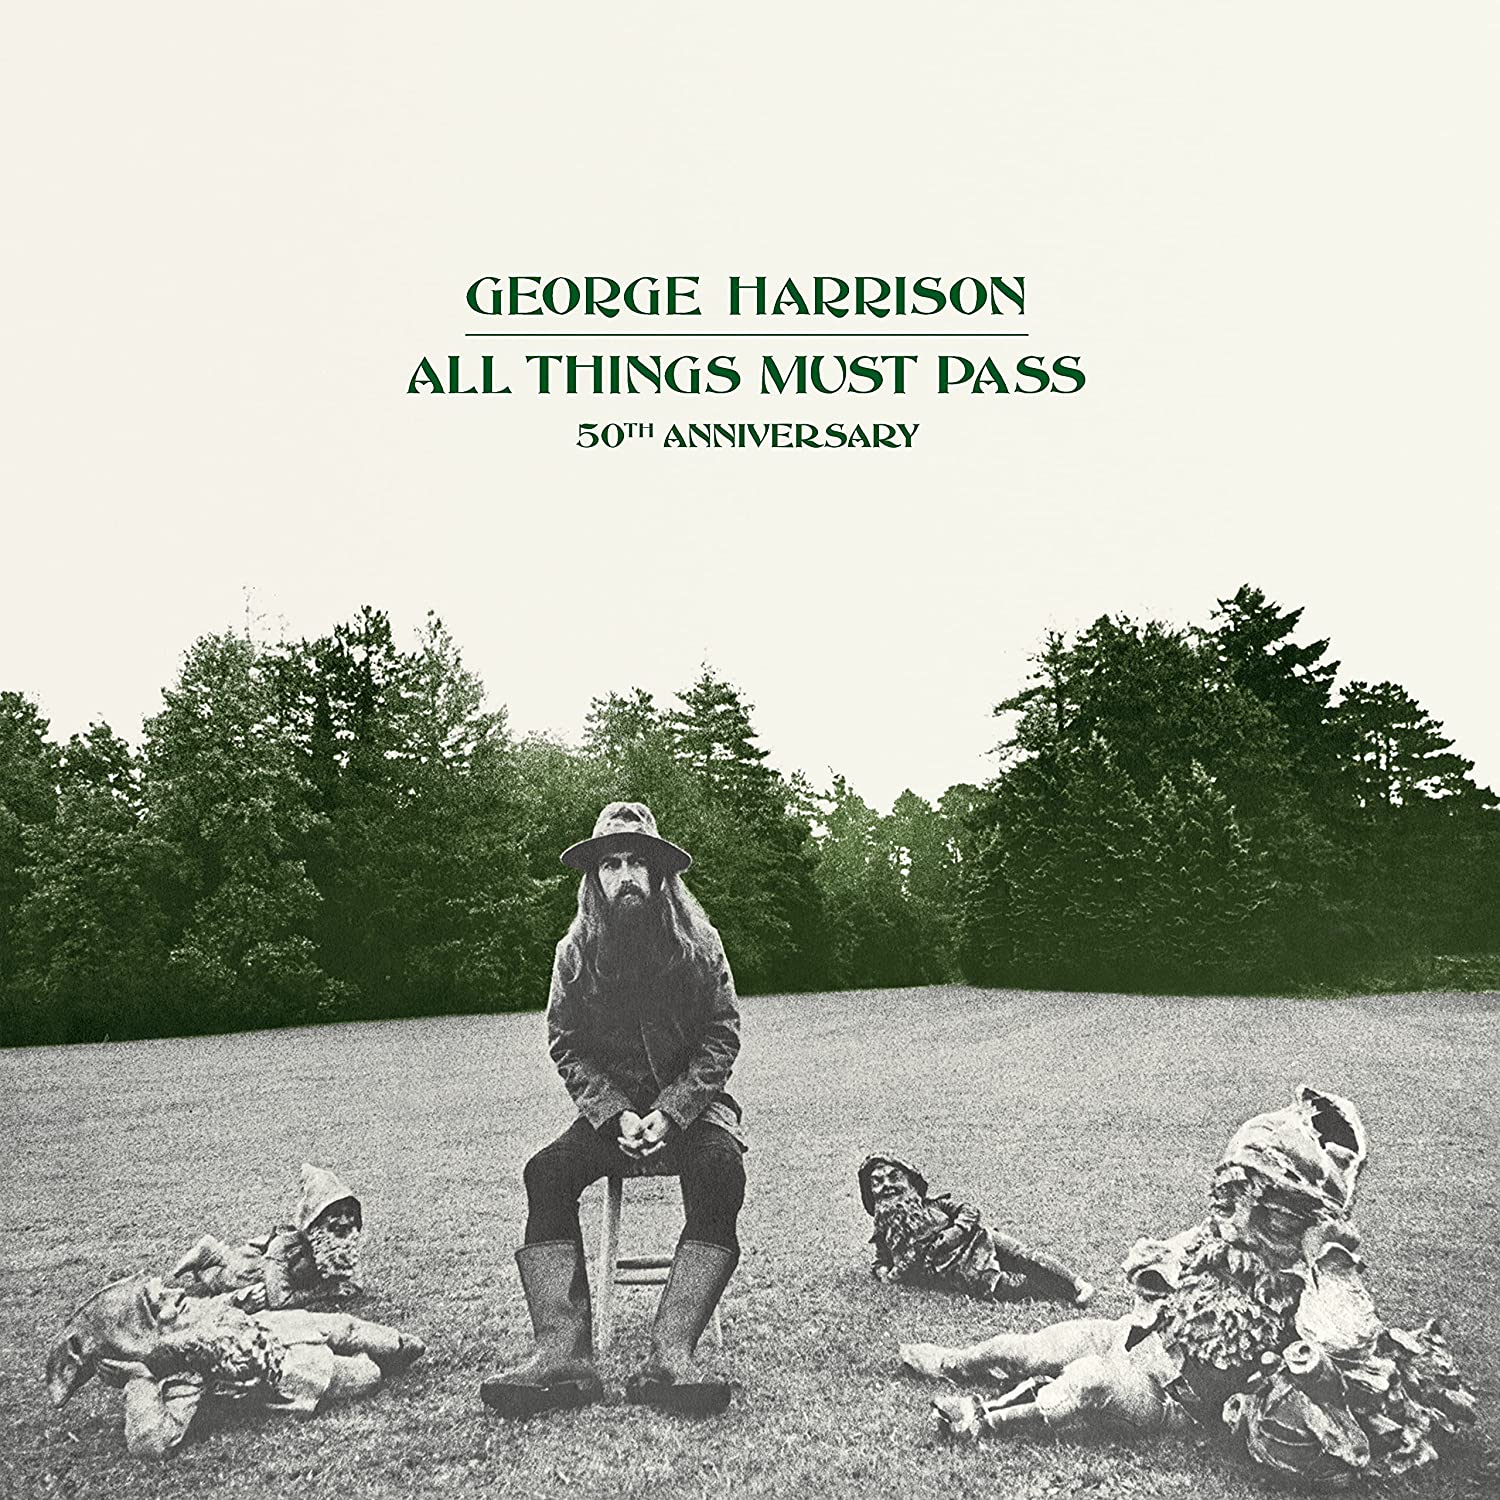 George Harrison / All Things Must Pass 50th anniversary edition